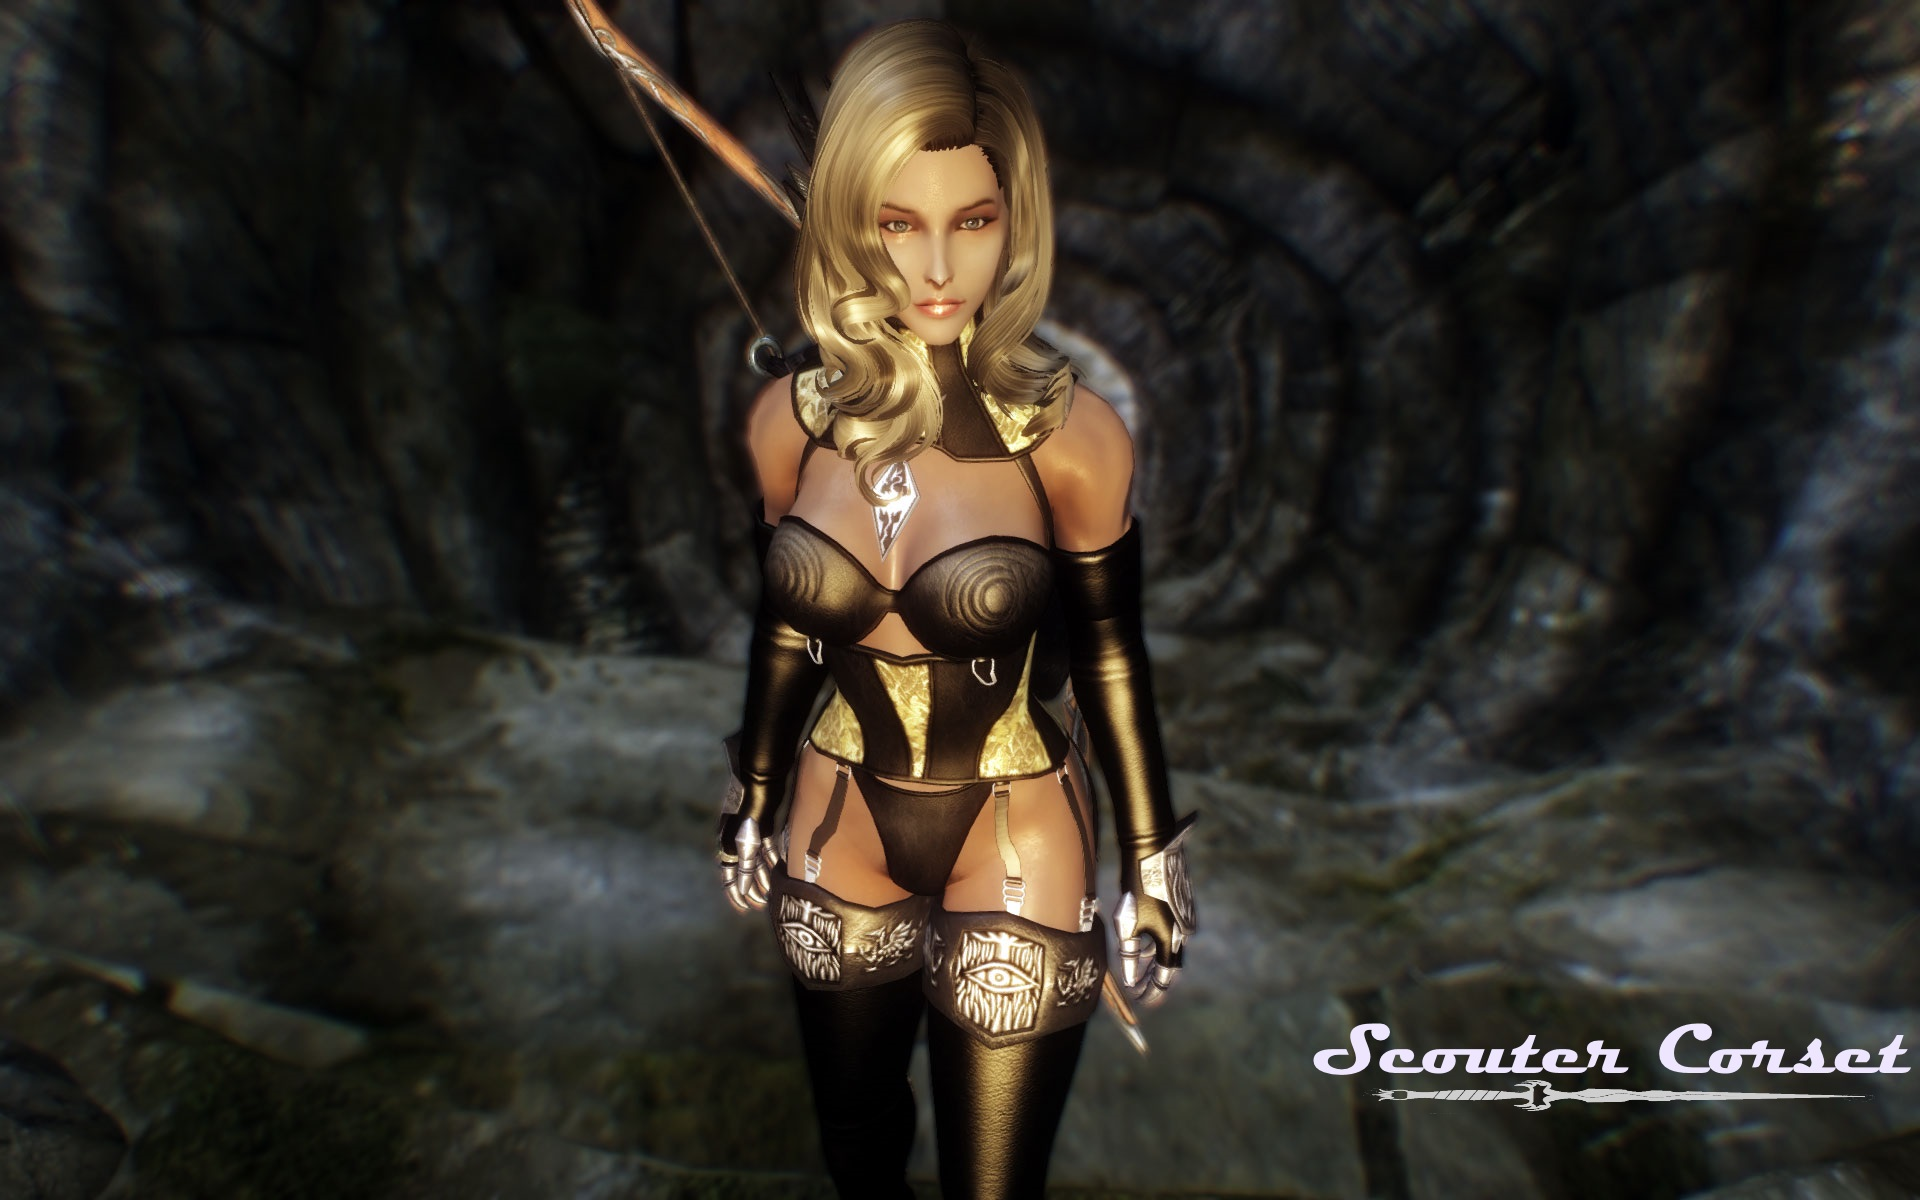 Scouter_Corset_by_NEO.jpg